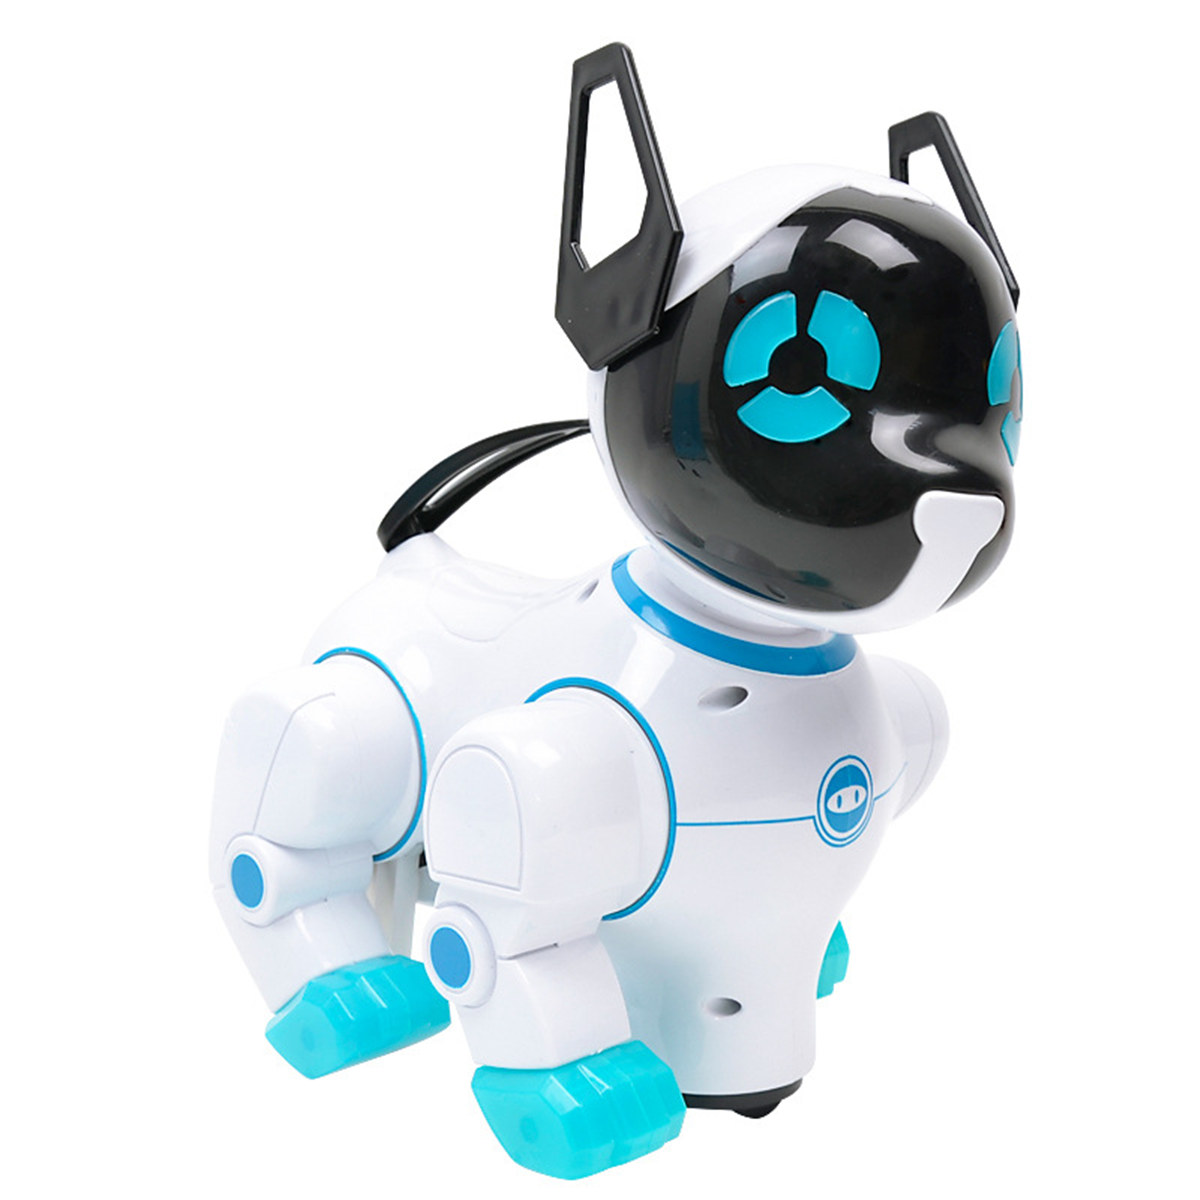 Electronic Pet Interactive Robot Puppy Toys Responds To Walking Chasing And Fun Activities Toy Following-Toys Animal-Toy